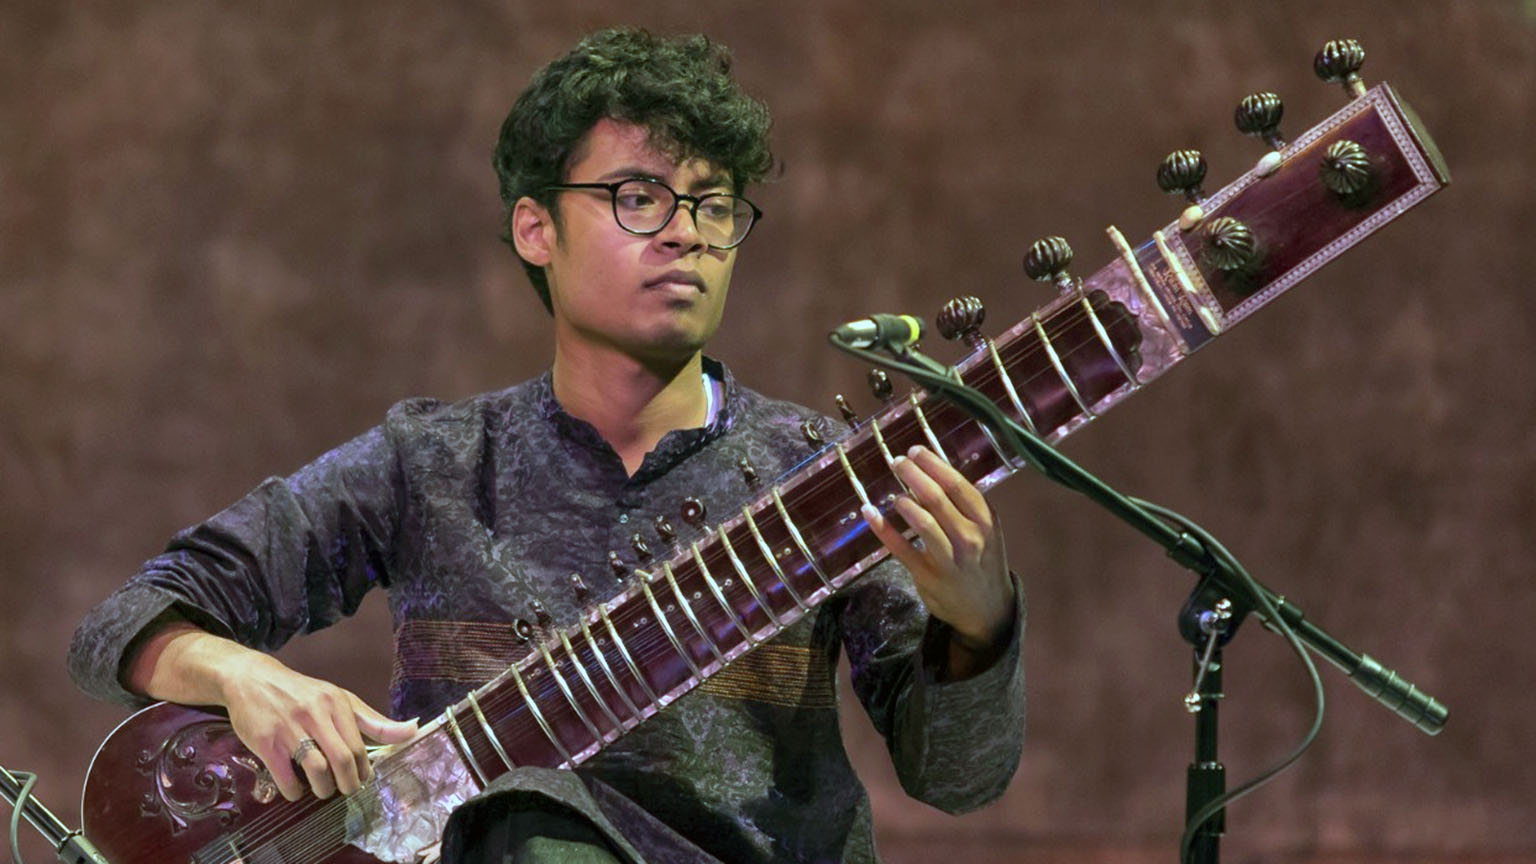 Snehesh Nag, a graduate student, playing a sitar.